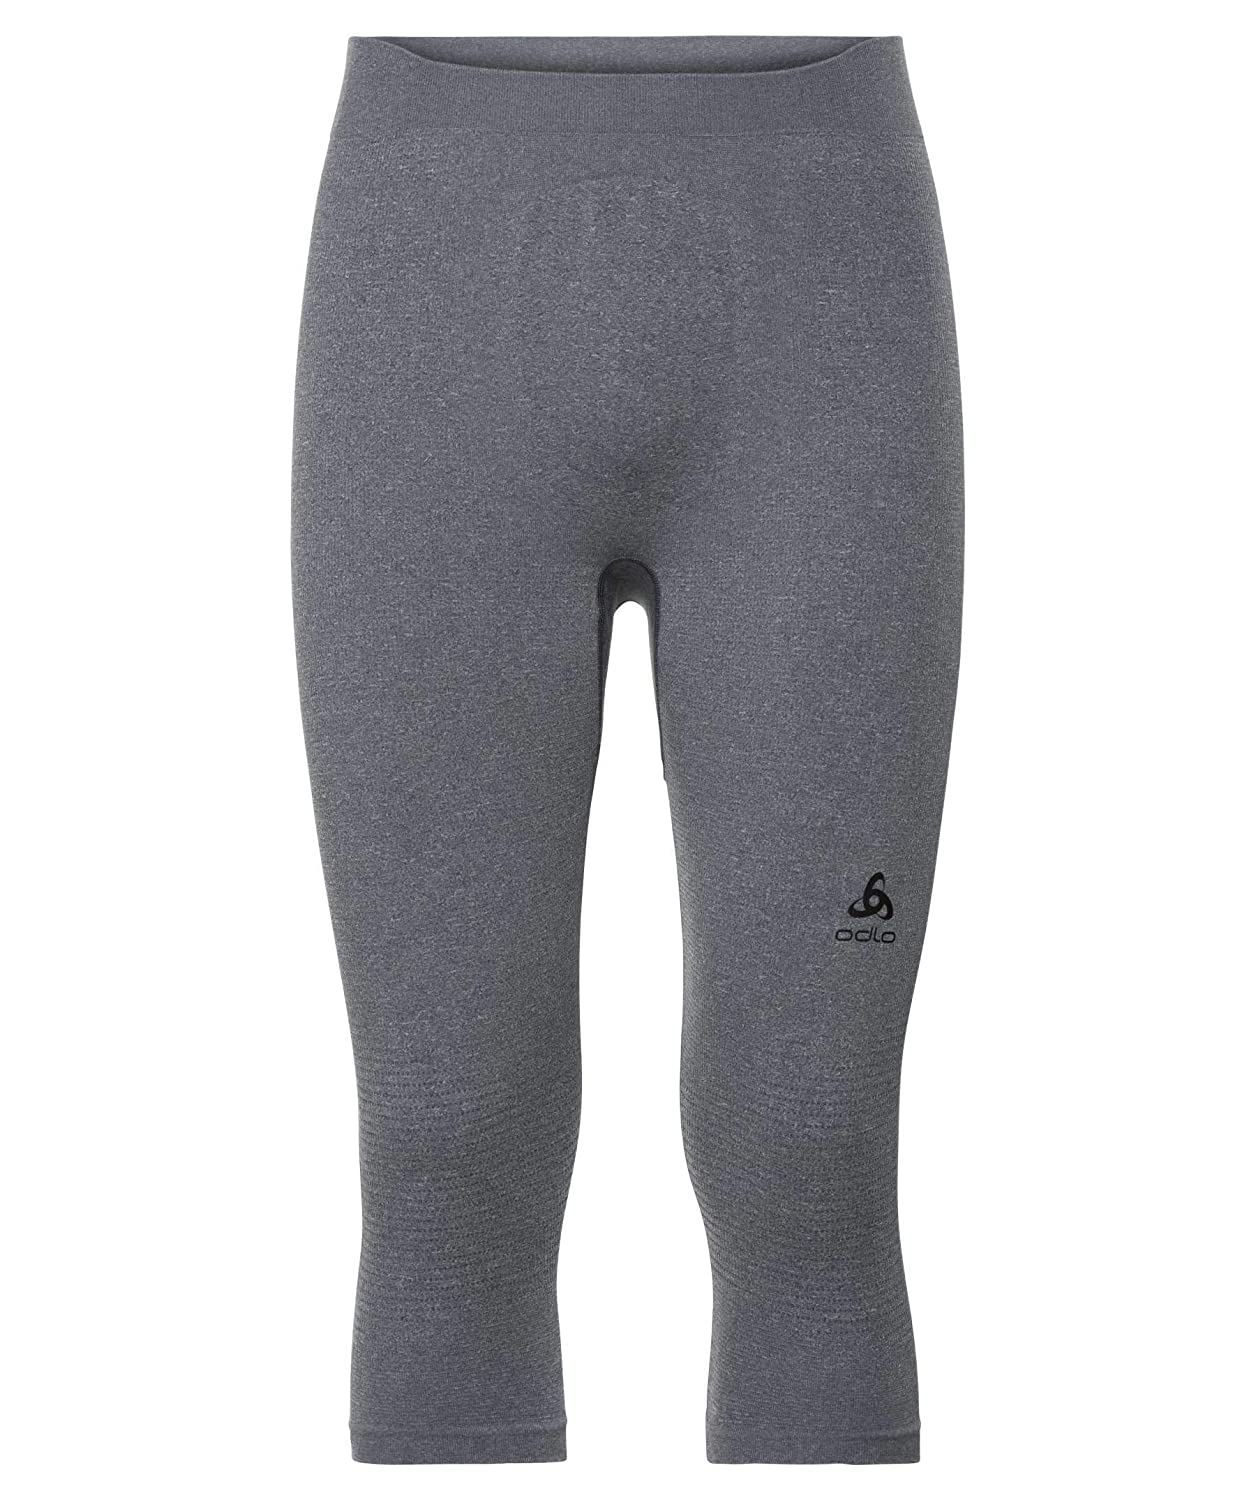 Odlo Warm Performance SUW Bottom Pant 3/4 Men - Winter Thermowäsche